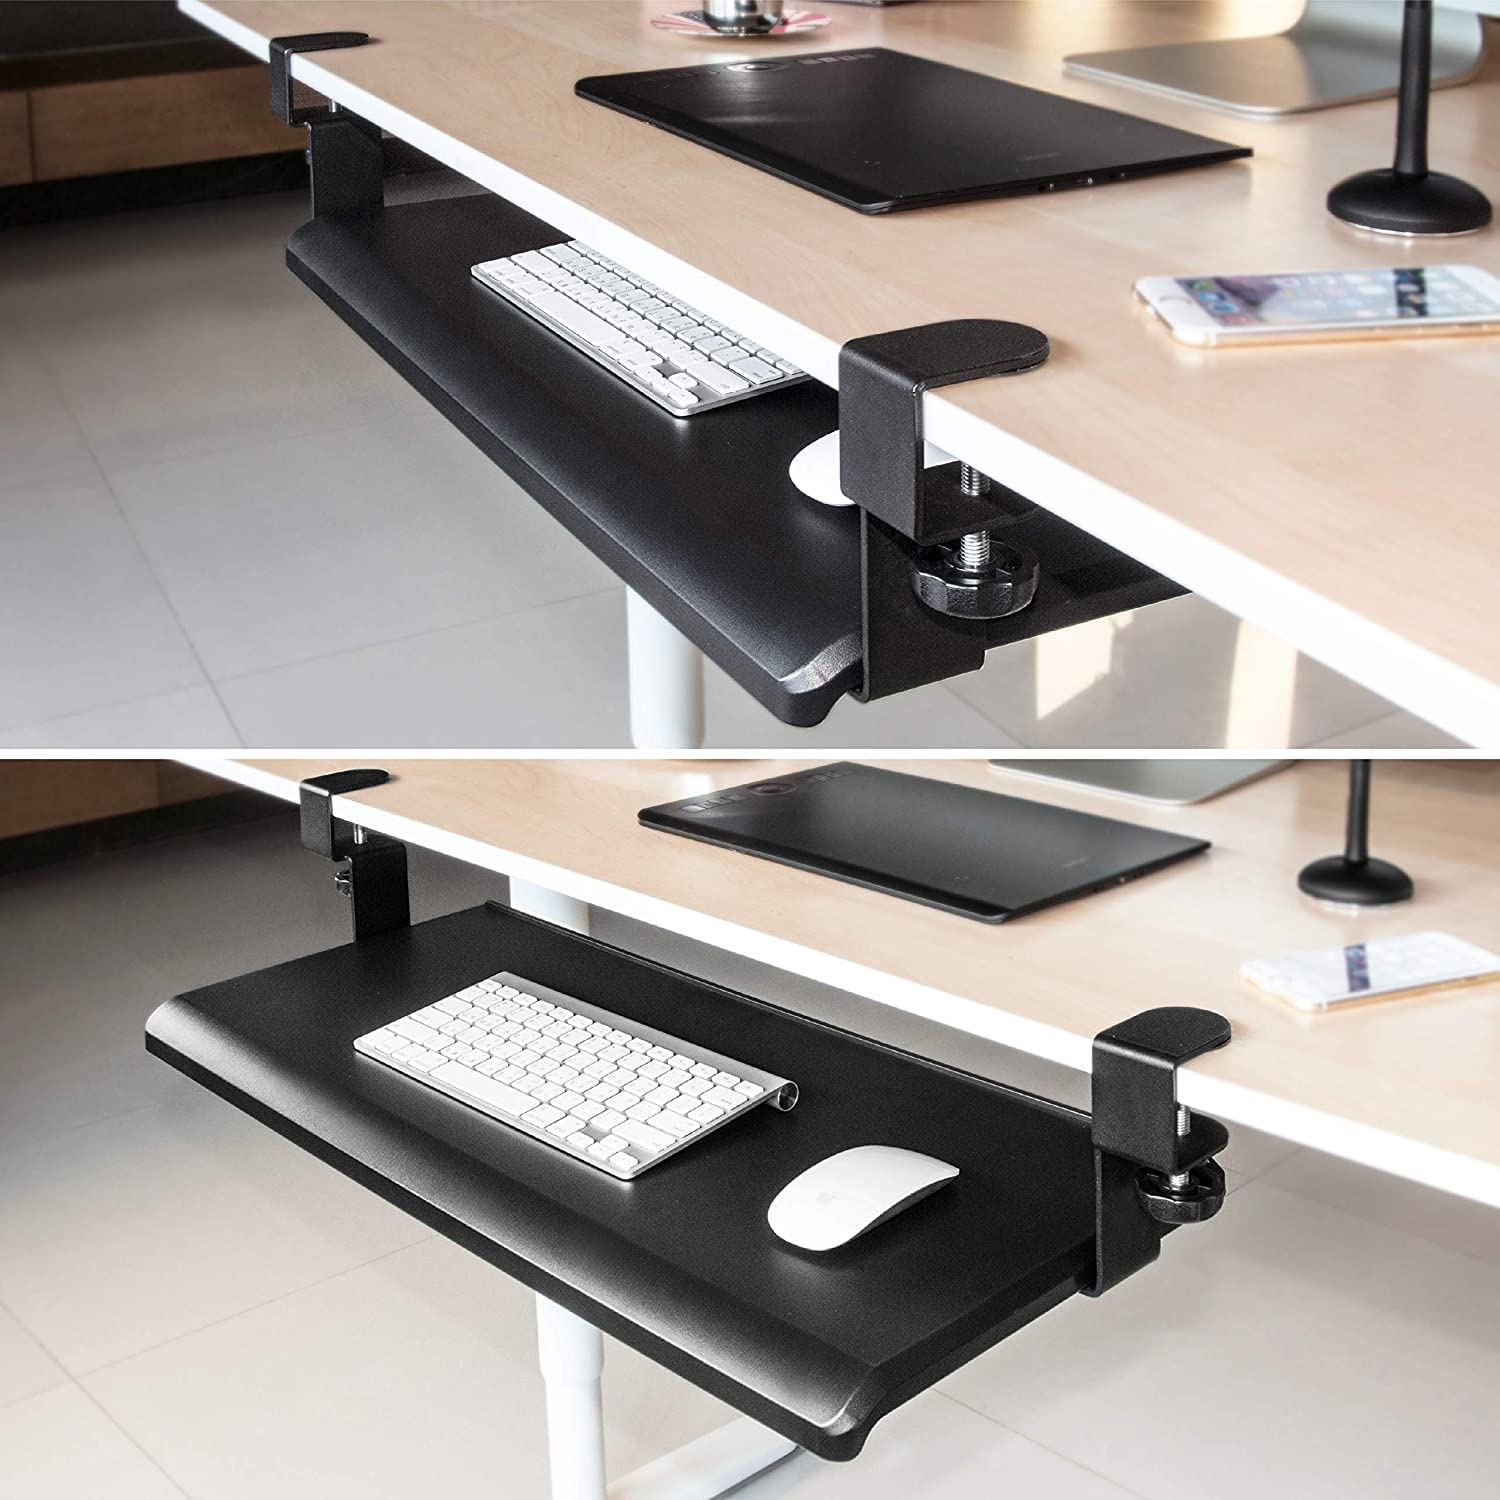 Large Surface 27.5 inch Under Desk Ergonomic Keyboard Tray Easy Tool-Free Install EHO Prime Clamp-On Retractable Adjustable Keyboard Tray